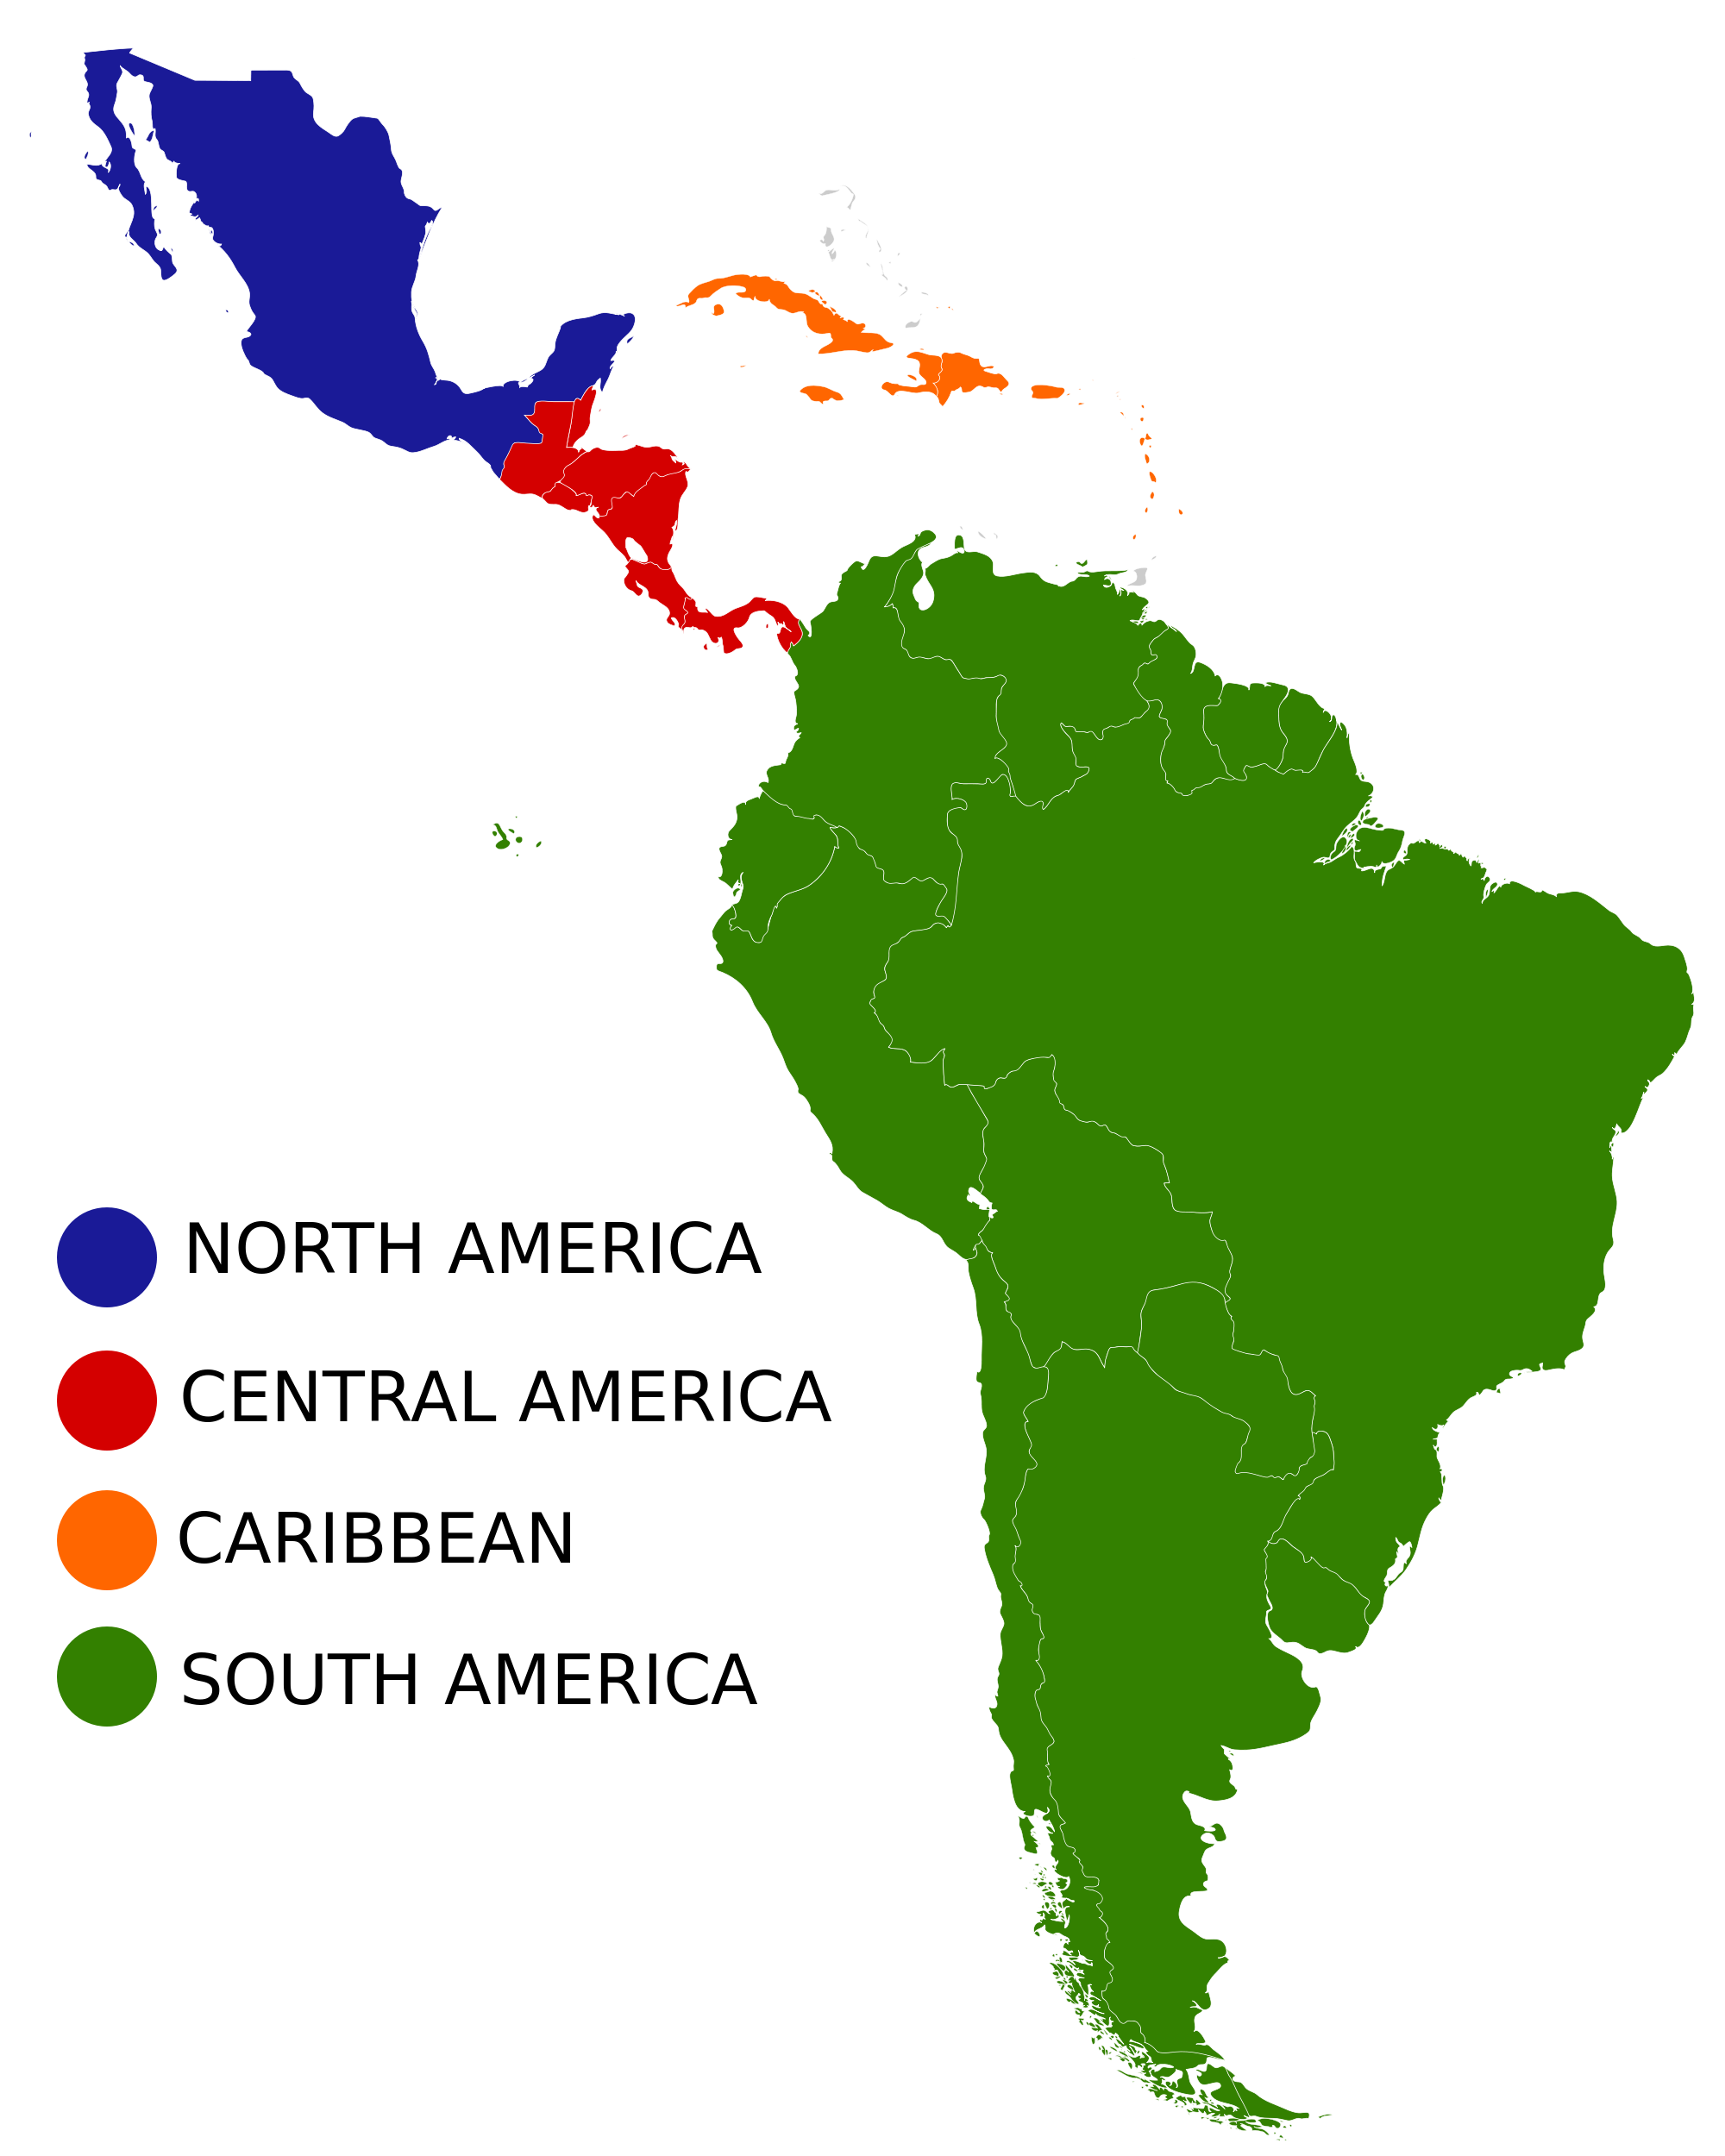 South america png. Image latin regions cold